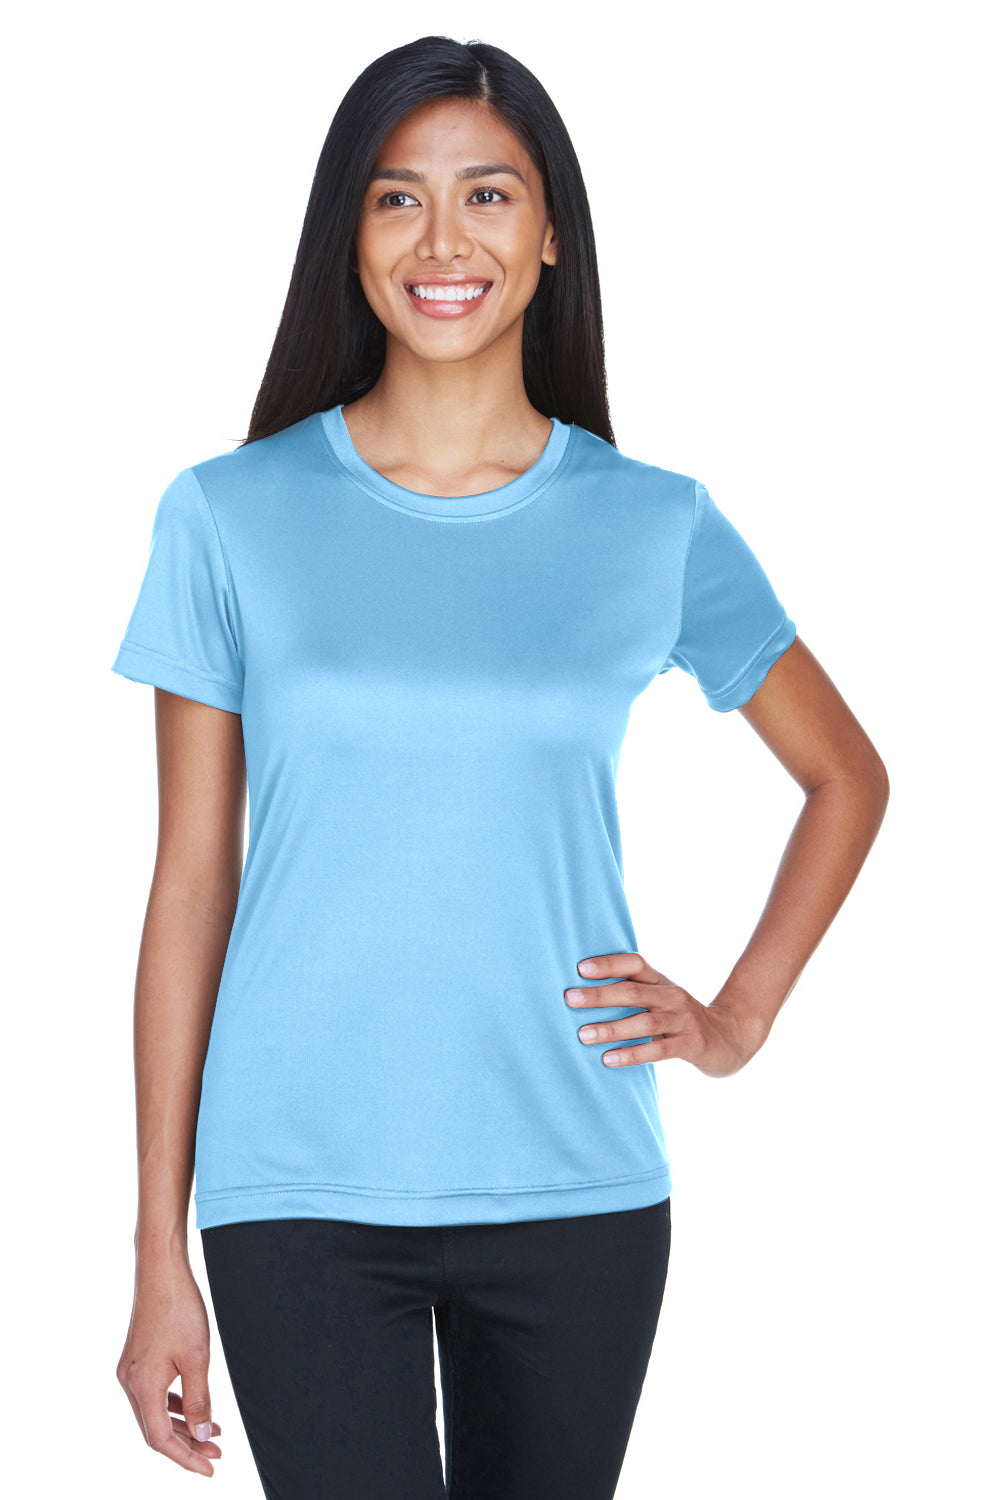 UltraClub 8620L Womens Cool & Dry Performance Moisture Wicking Short Sleeve Crewneck T-Shirt Columbia Blue Front